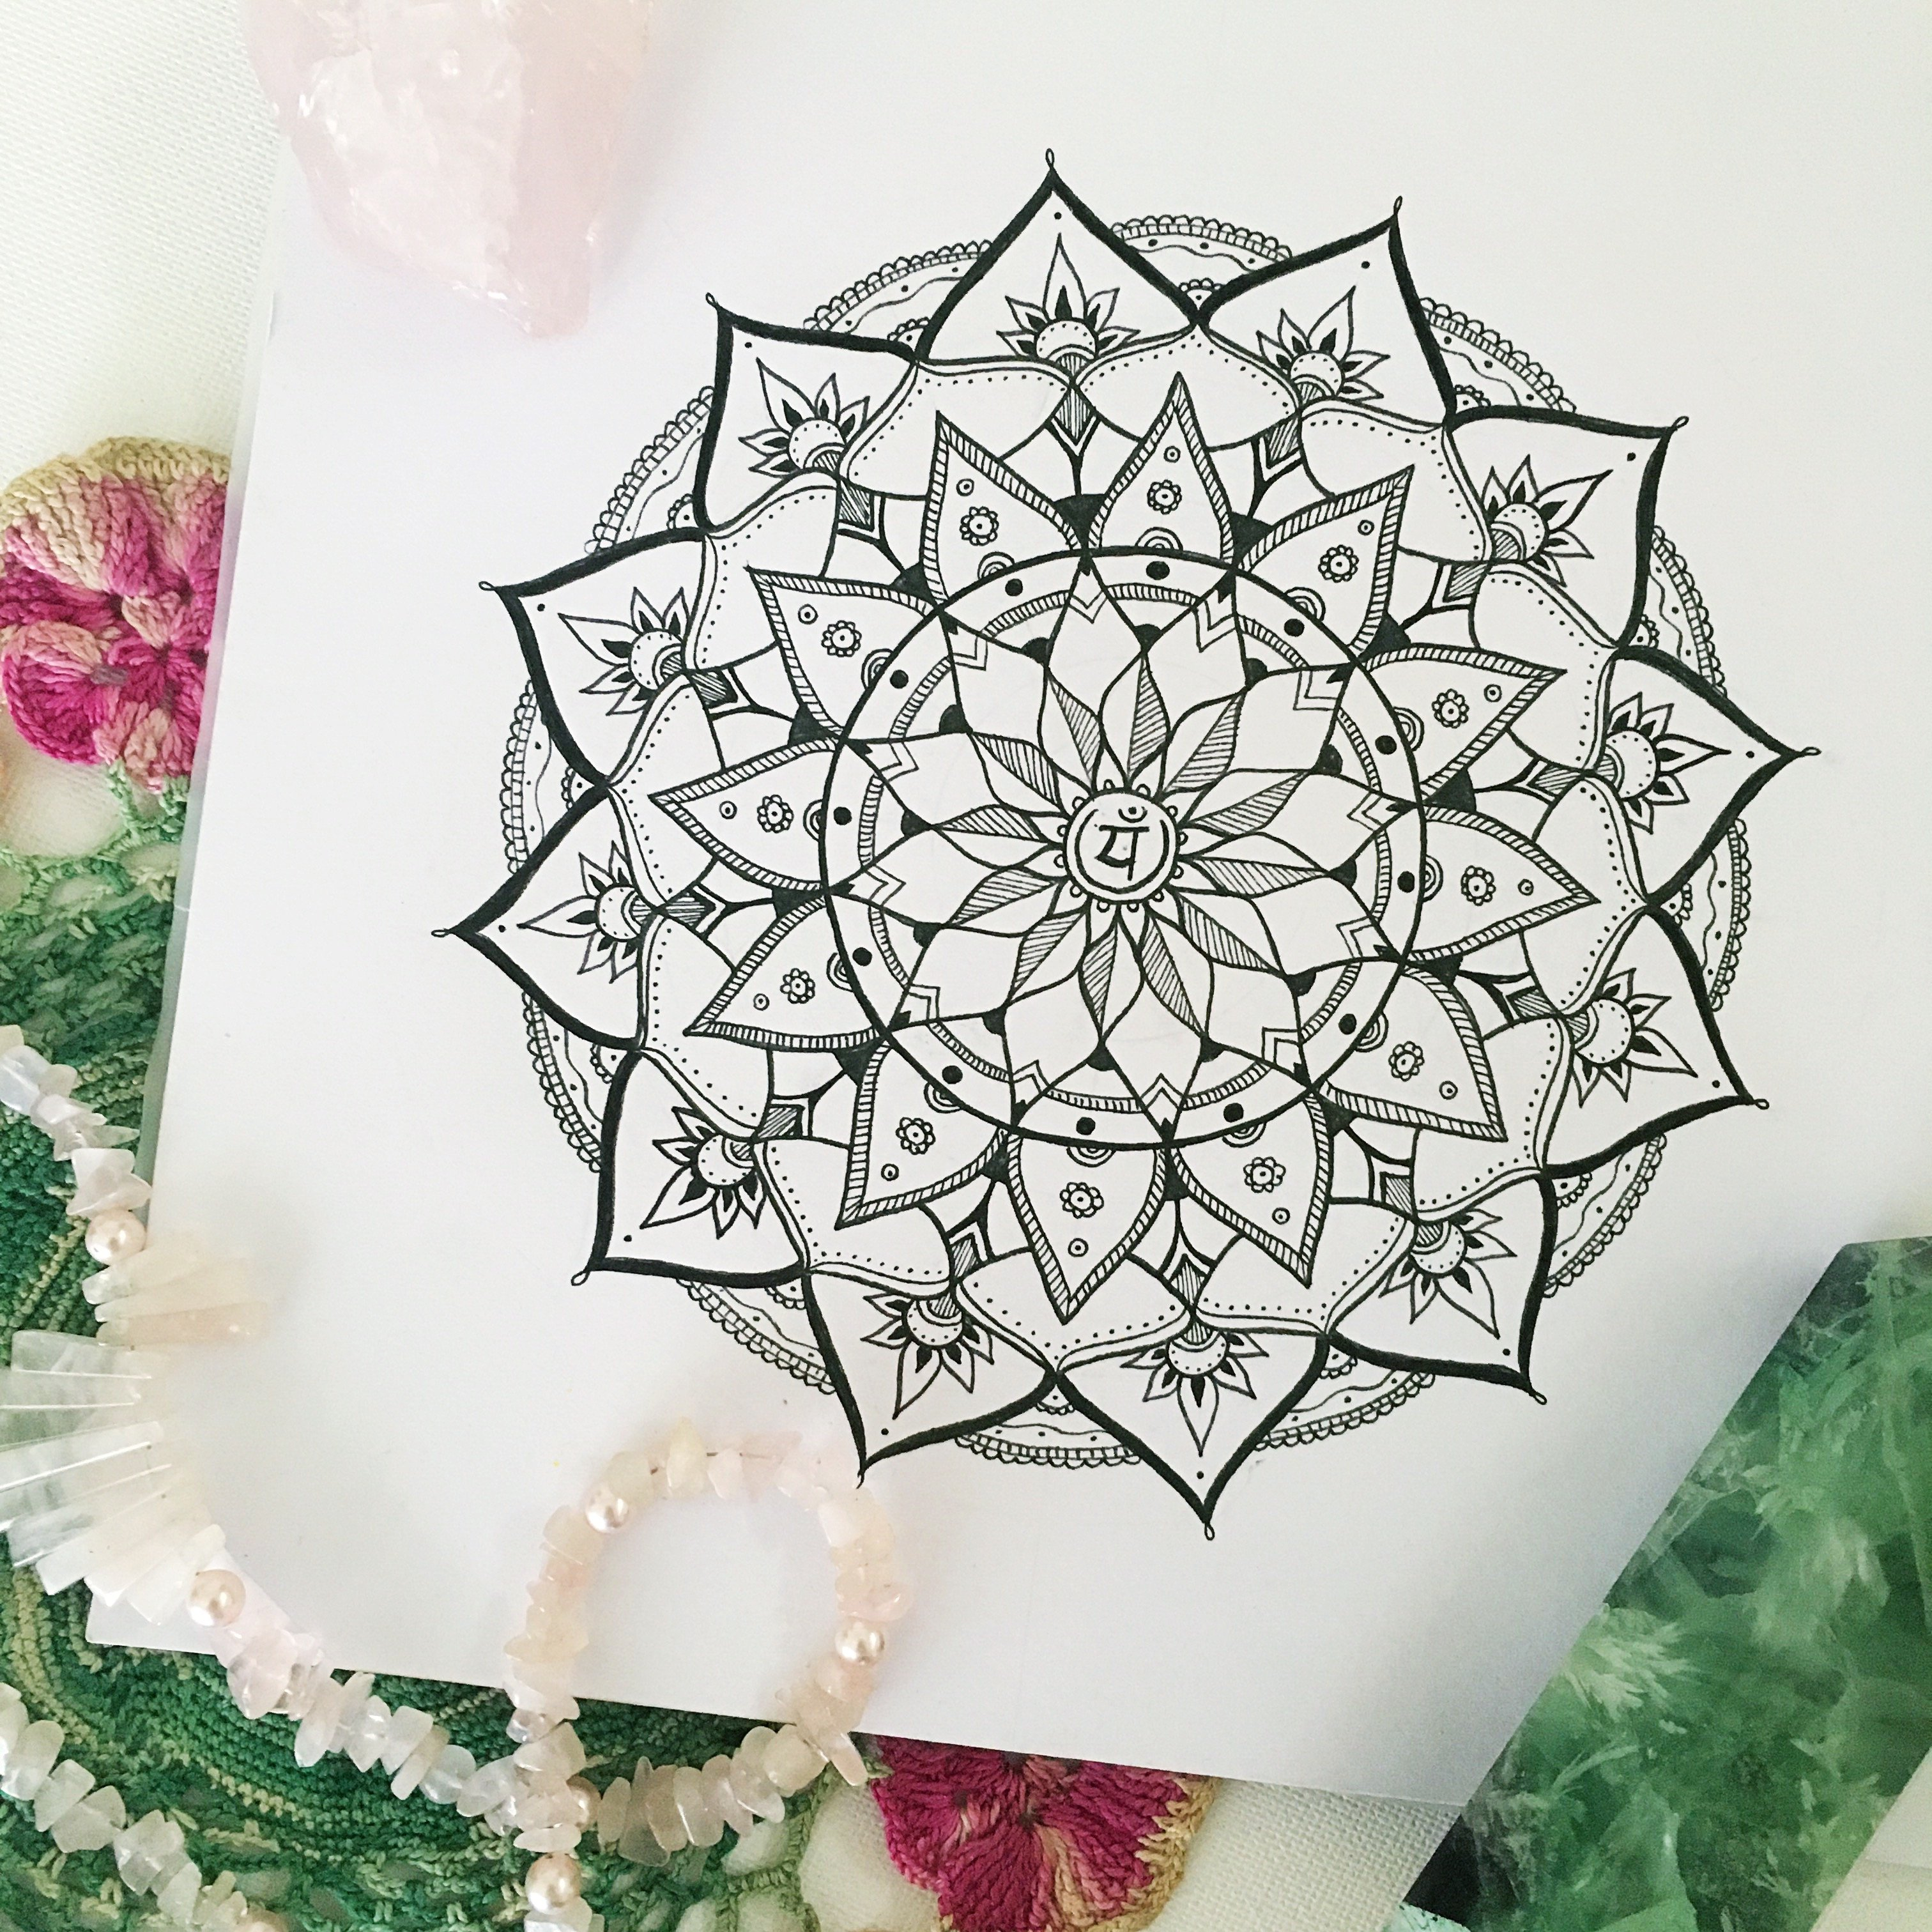 Mandalas – a Meditation on Chakras